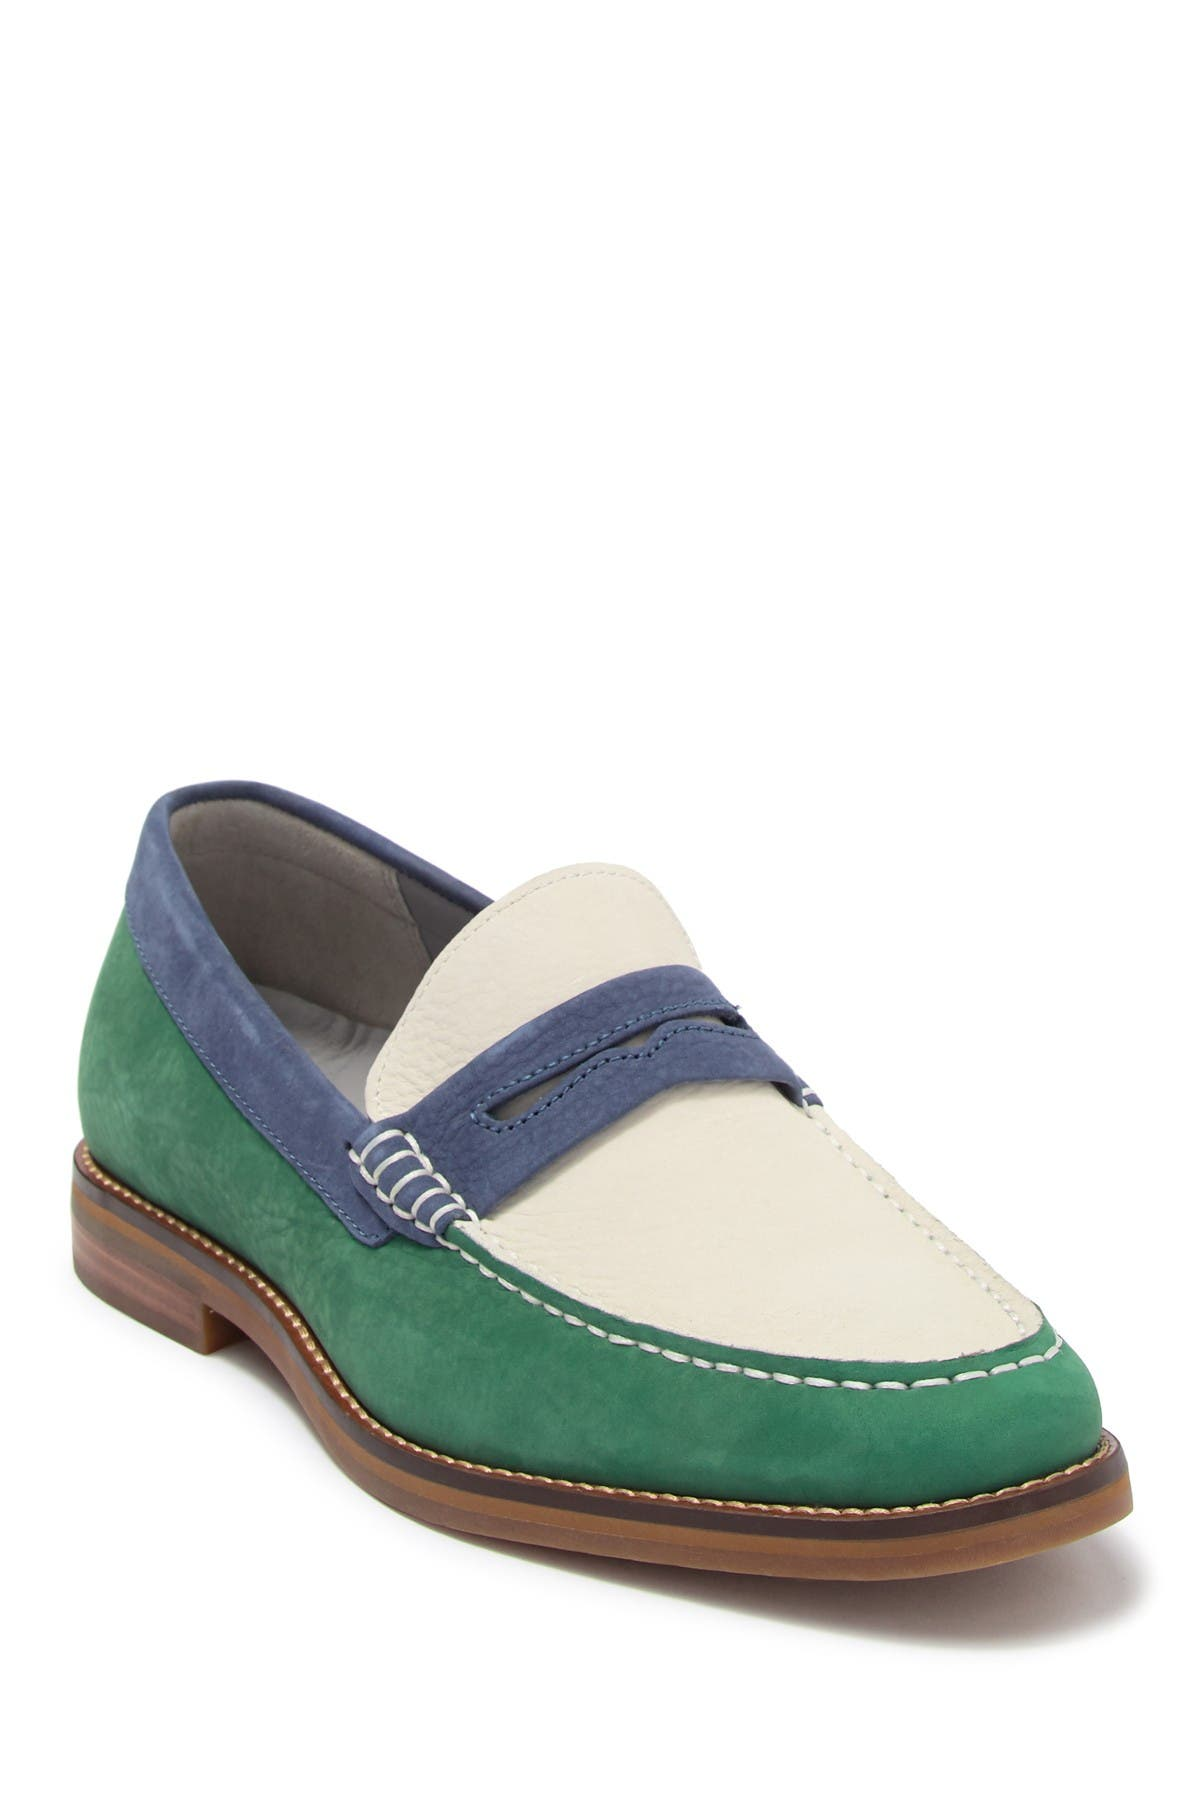 Sperry | Gold Cup Exeter Penny Loafer